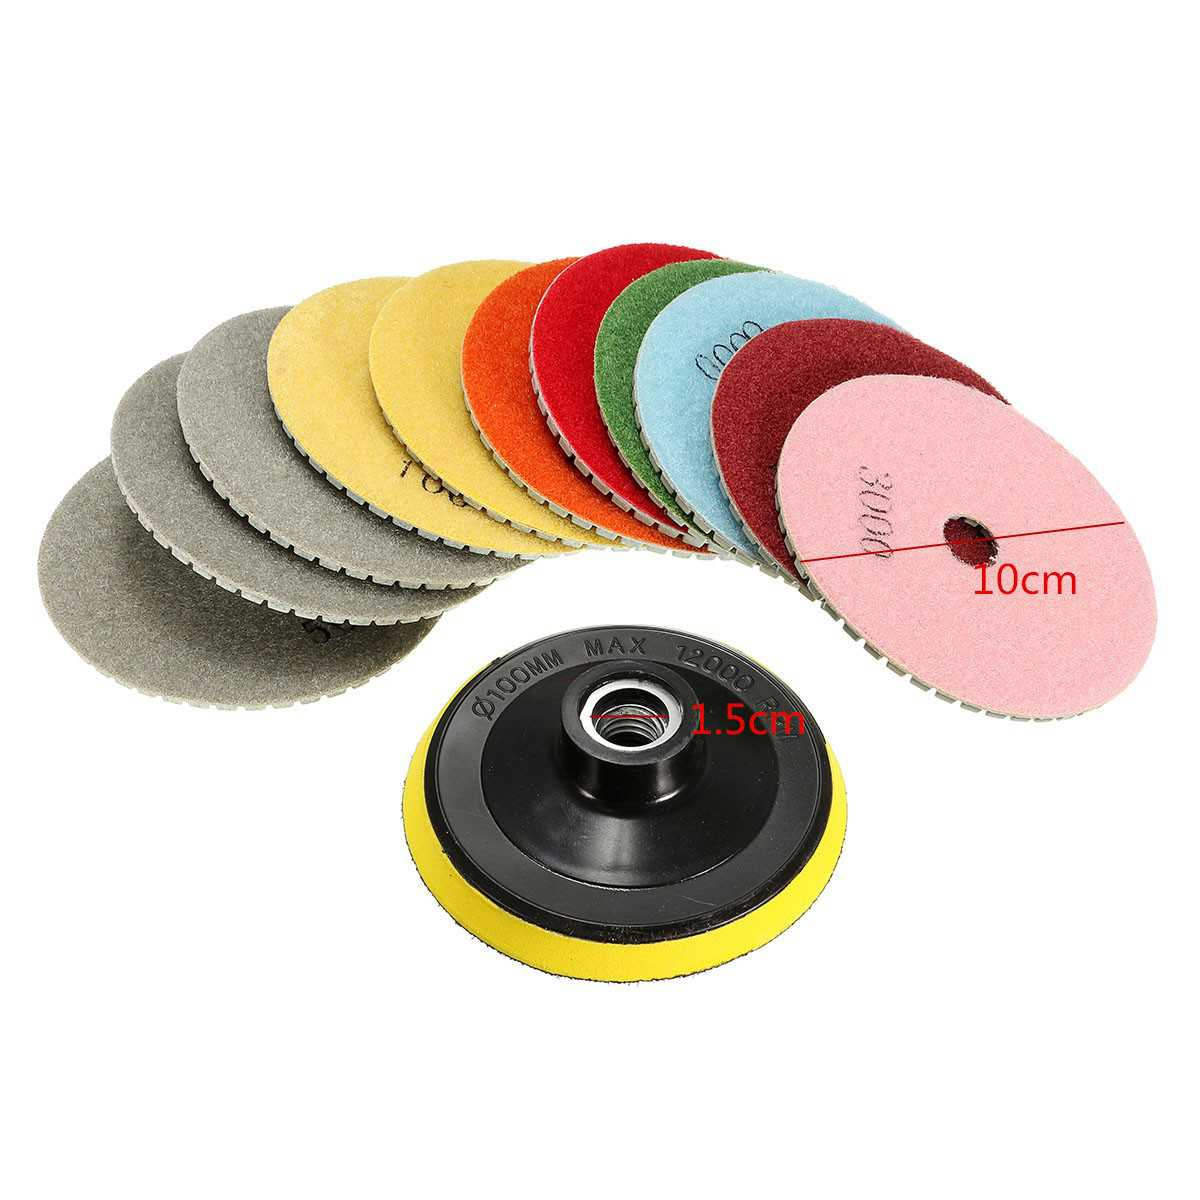 12pcs 4'' M14 Diamond Polishing Pads Wet Dry Set Kit For Granite Concrete Marble New